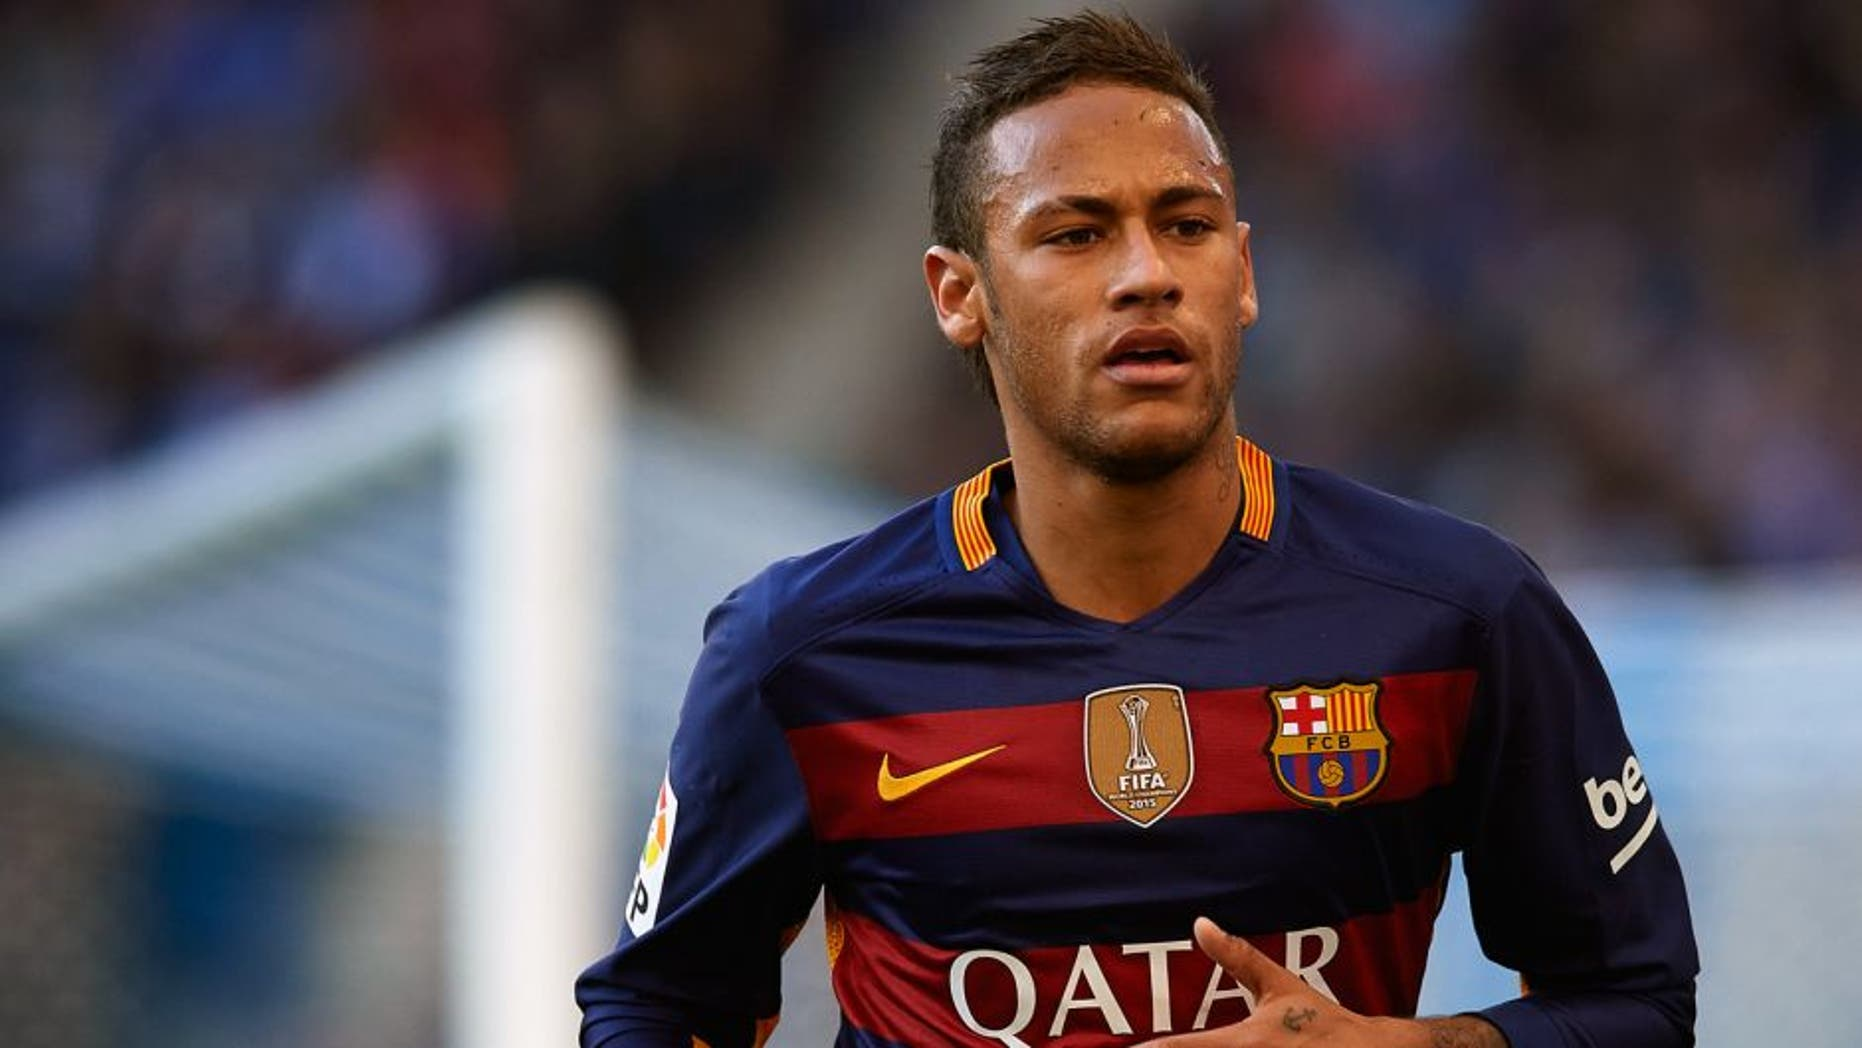 BARCELONA, SPAIN - JANUARY 02: Neymar JR of Barcelona looks on during the La Liga match between Real CD Espanyol and FC Barcelona at Cornella-El Prat Stadium on January 2, 2016 in Barcelona, Spain. (Photo by Manuel Queimadelos Alonso/Getty Images)